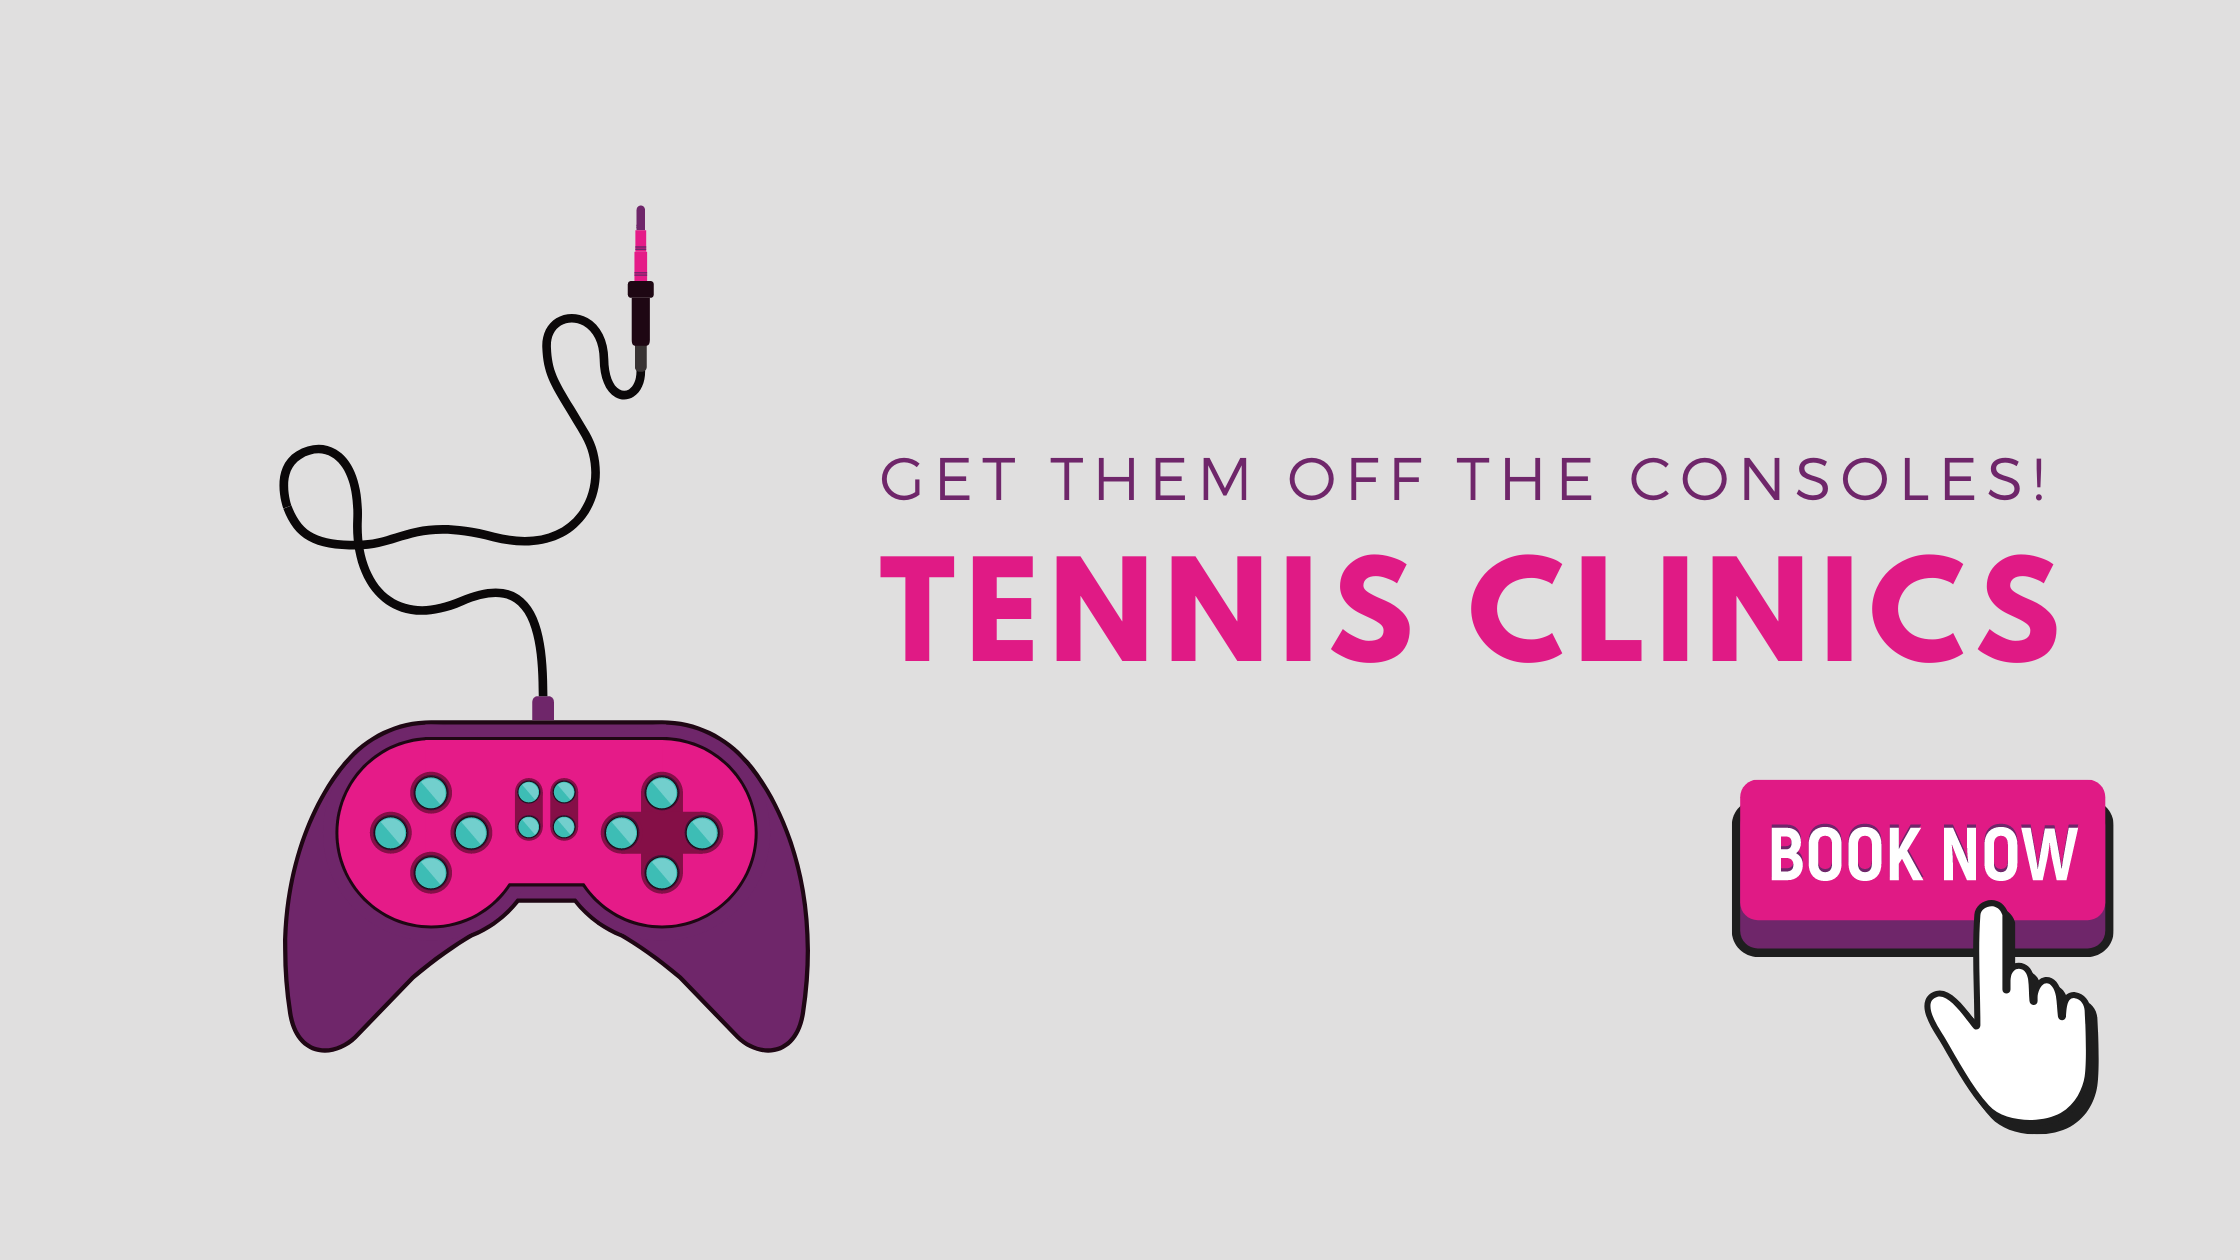 Holiday Tennis Clinics